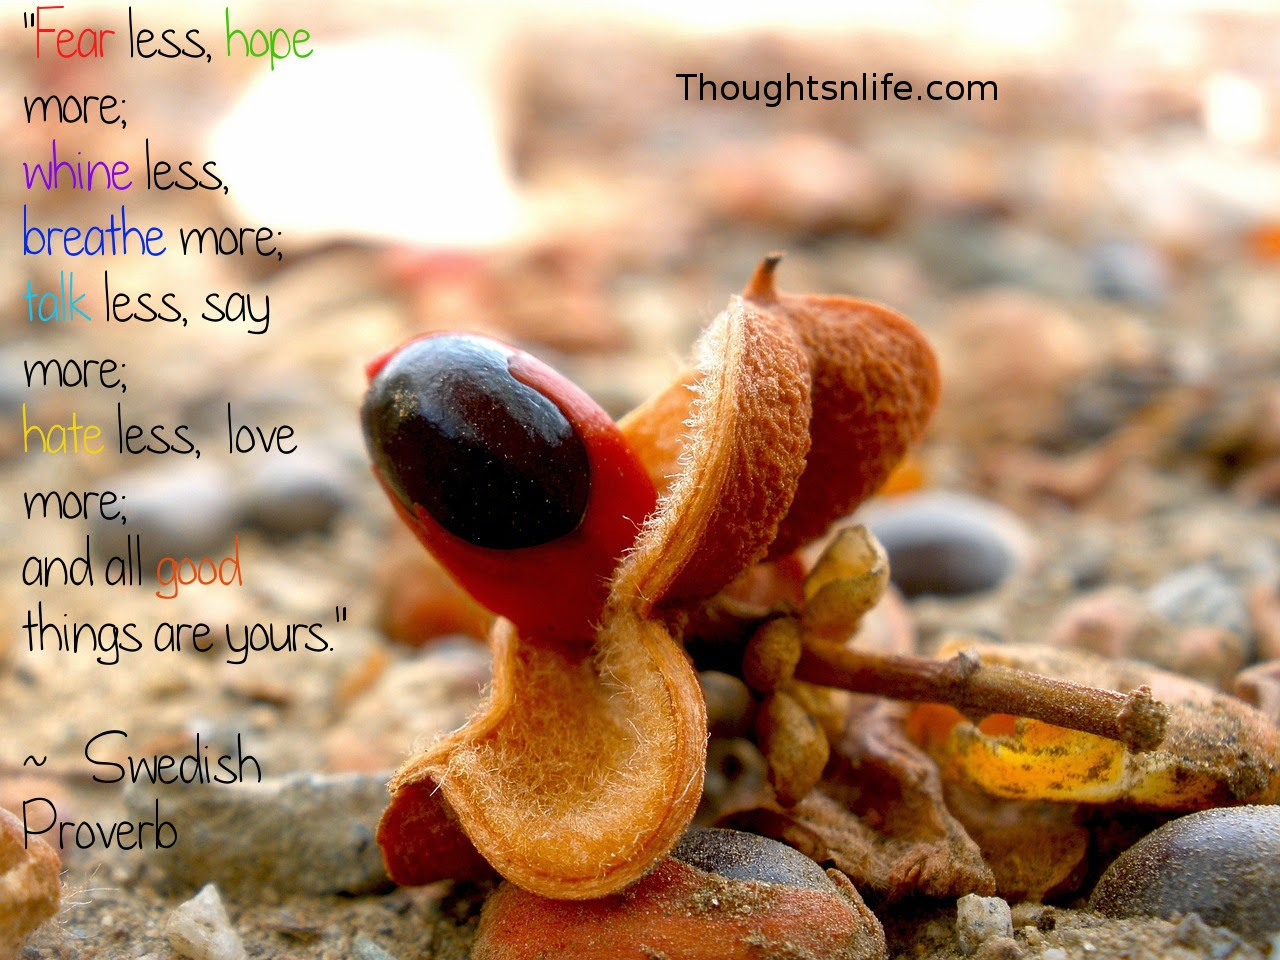 "Thoughtsnlife.com:""Fear less, hope more;  whine less, breathe more;  talk less, say more;  hate less,  love more;  and all good things are yours.""  ~   Swedish Proverb"